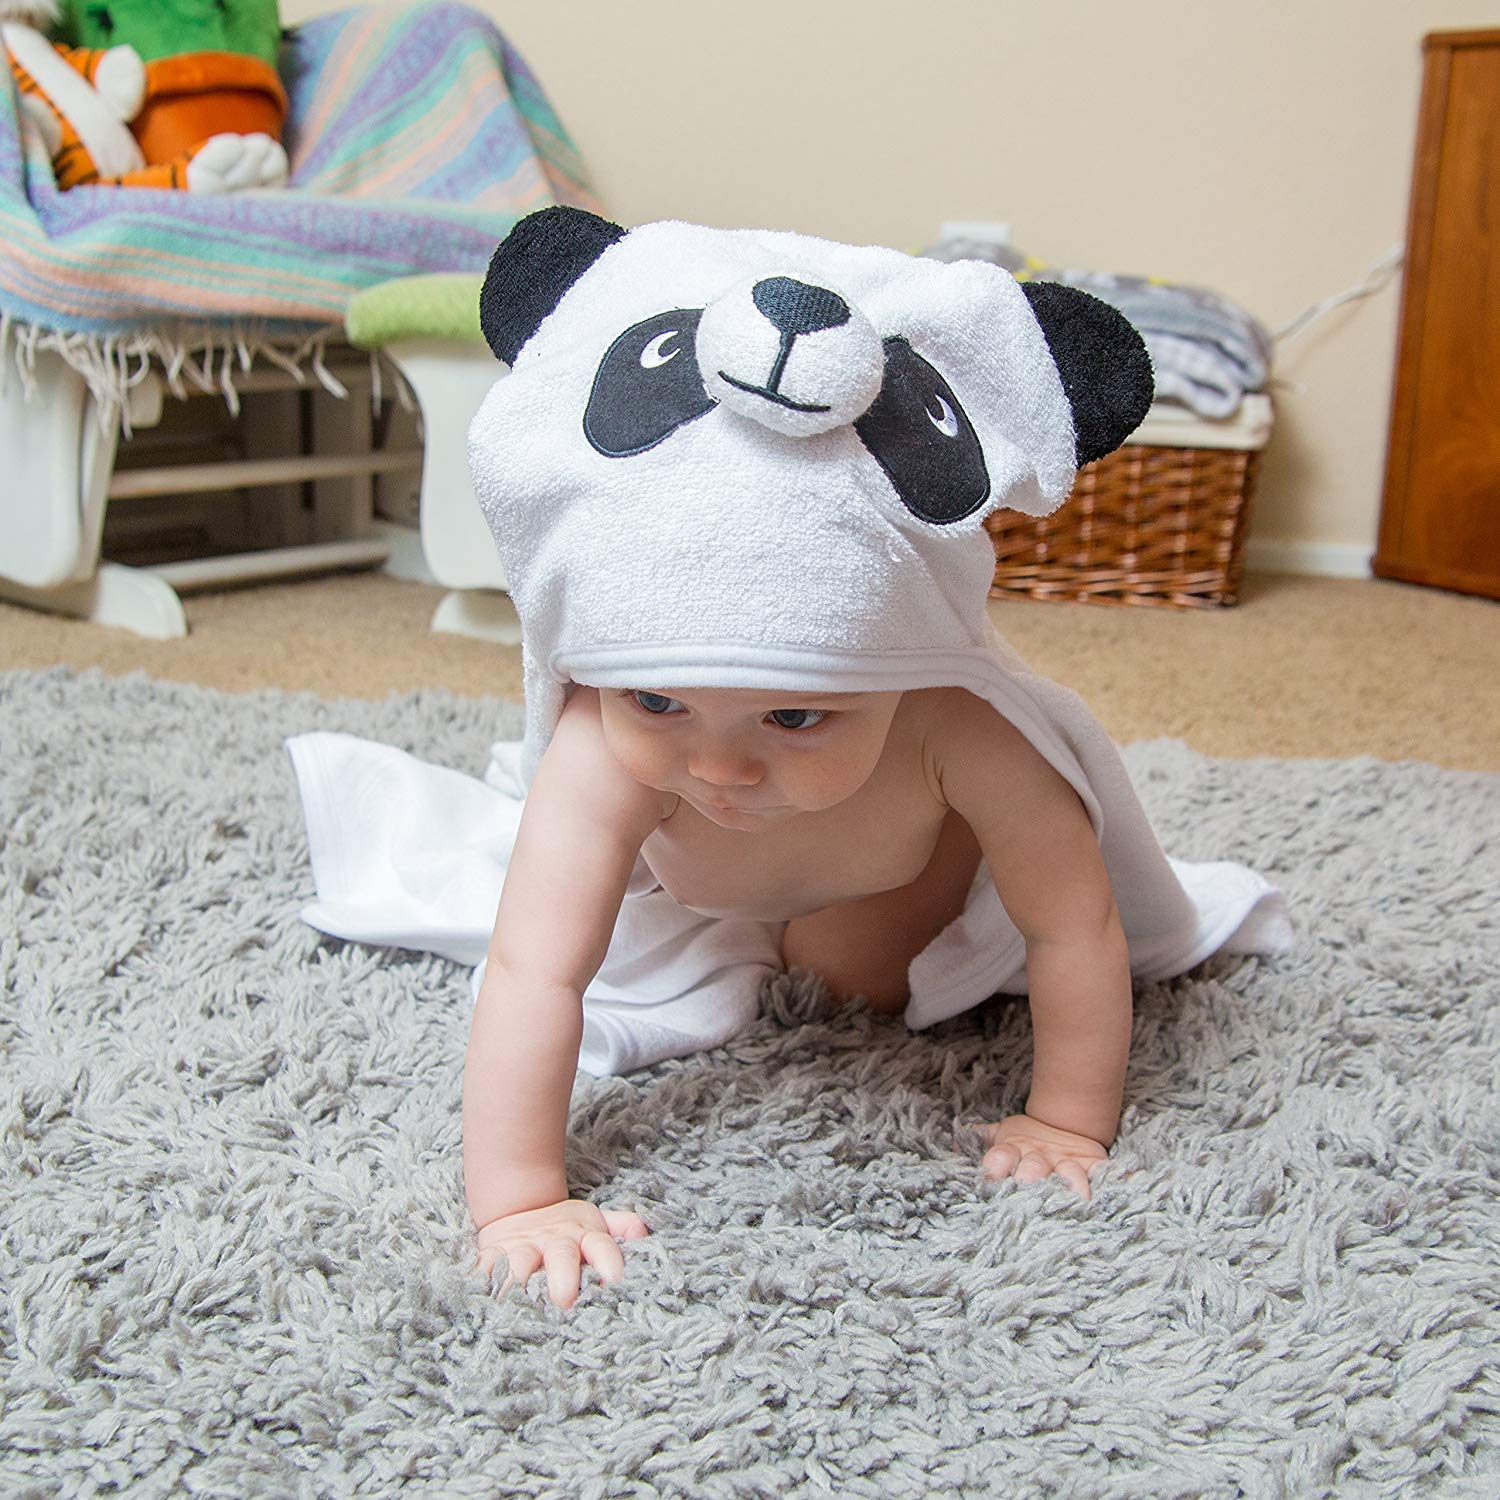 Bamboo Panda Hooded Baby Towel 100 Organic Unisex Towel Highly Absorbent And Super Soft Bath Towel For The Pool An B071G2C4Z9 8